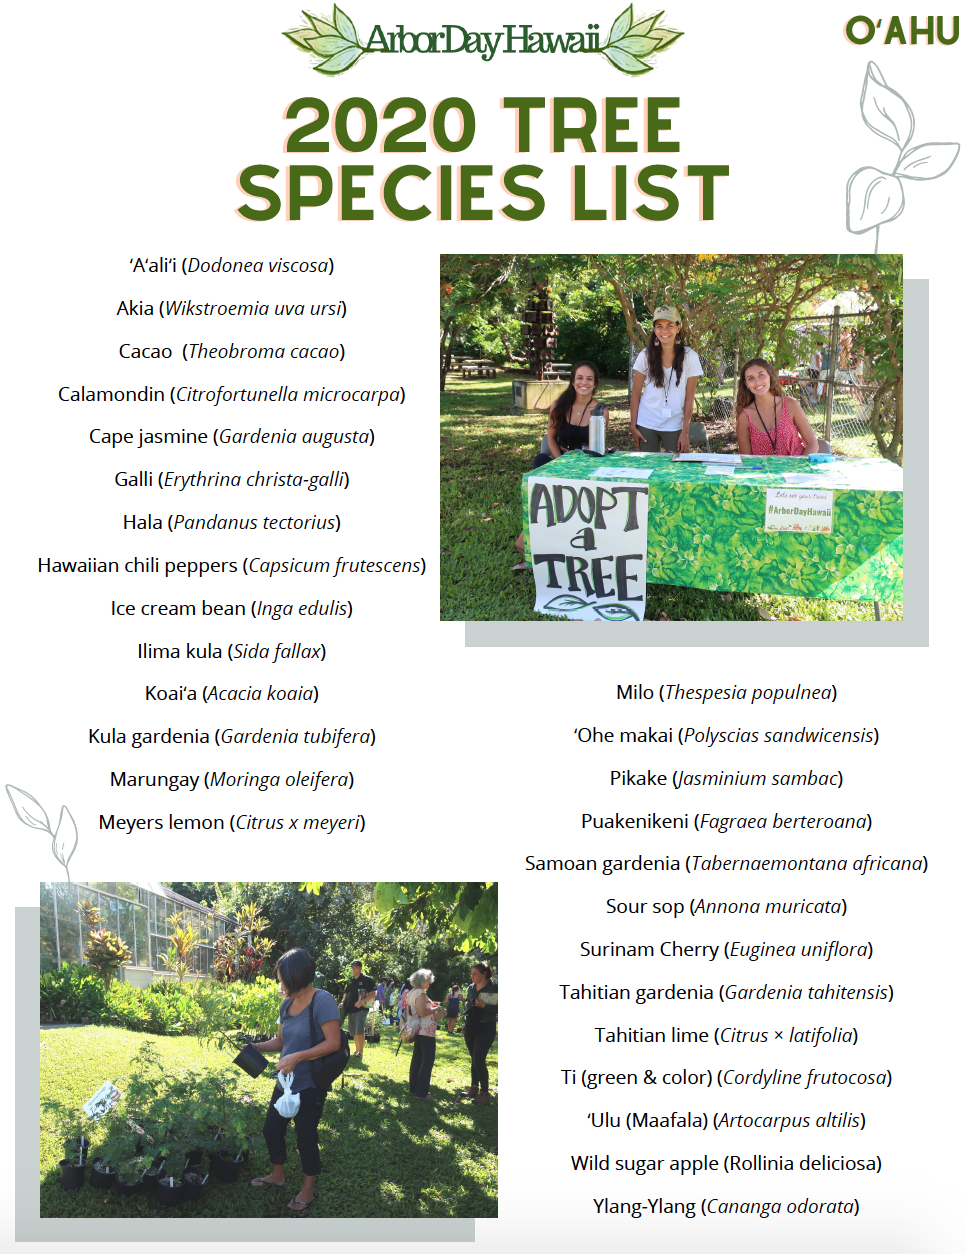 image of tree species list for Oahu Arbor Day